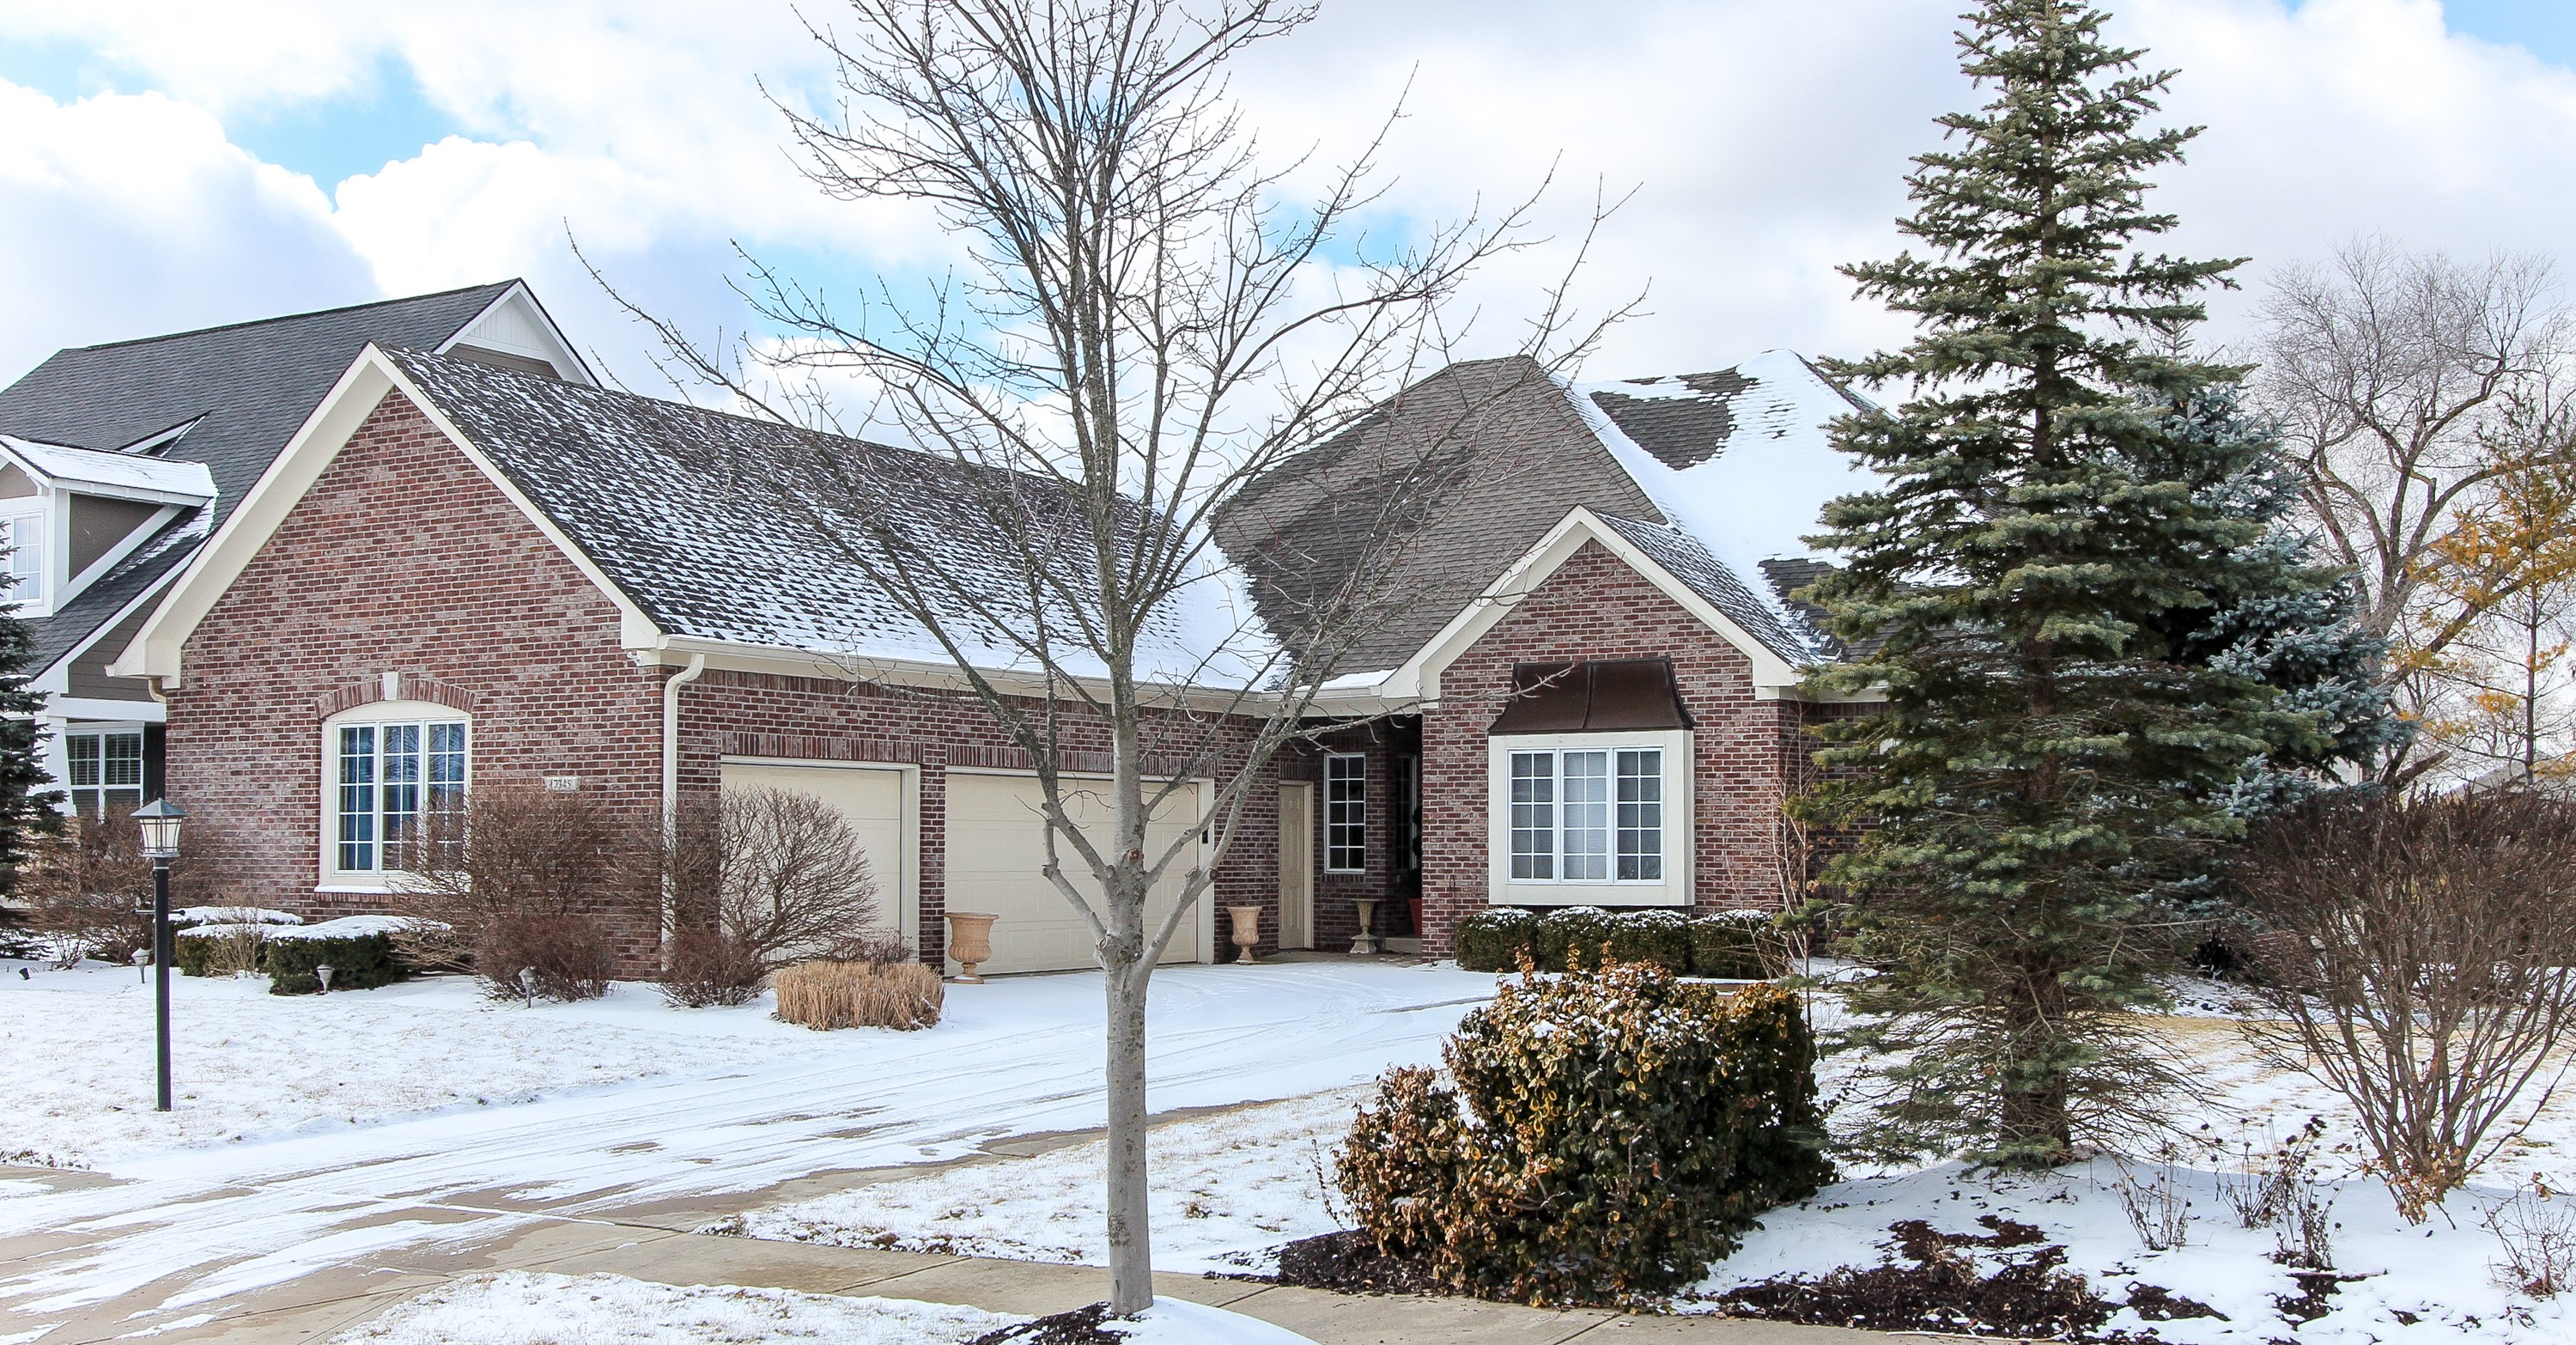 17345 Blue Moon Drive , Noblesville, Indiana 46060